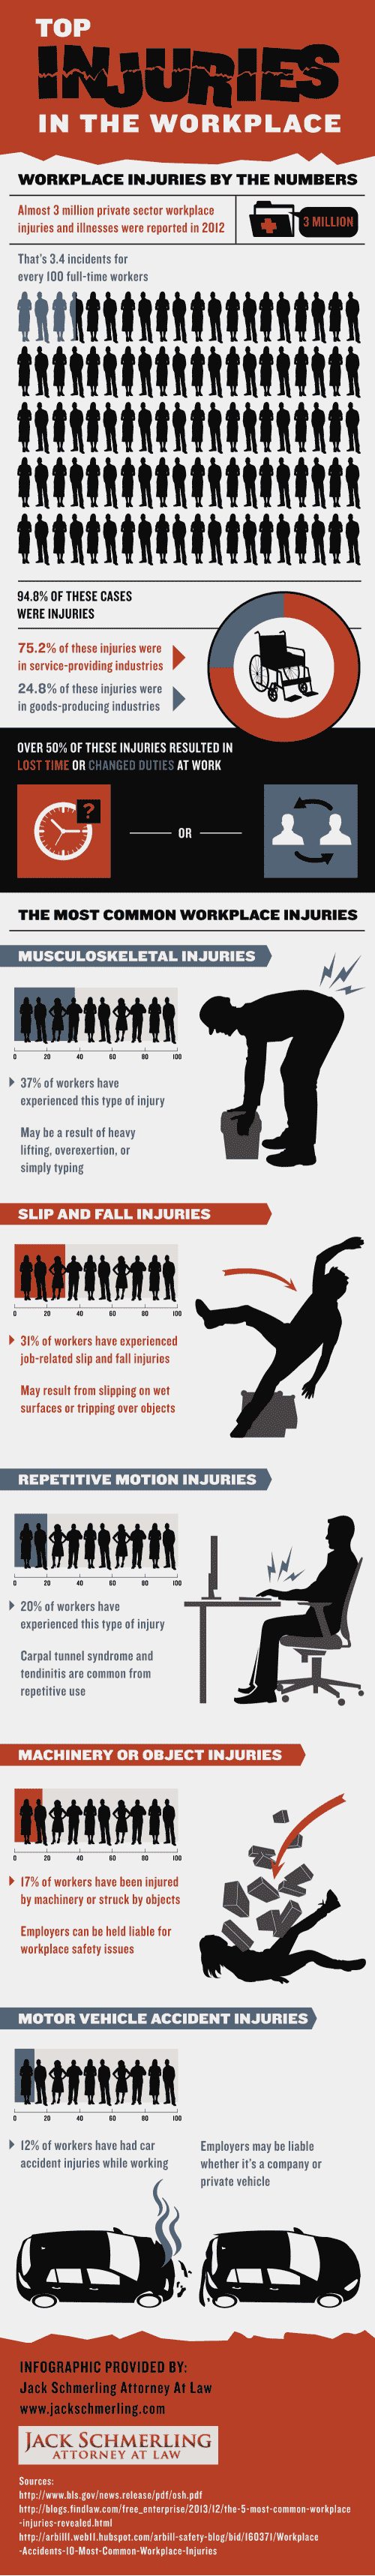 Top Injuries in the Workplace